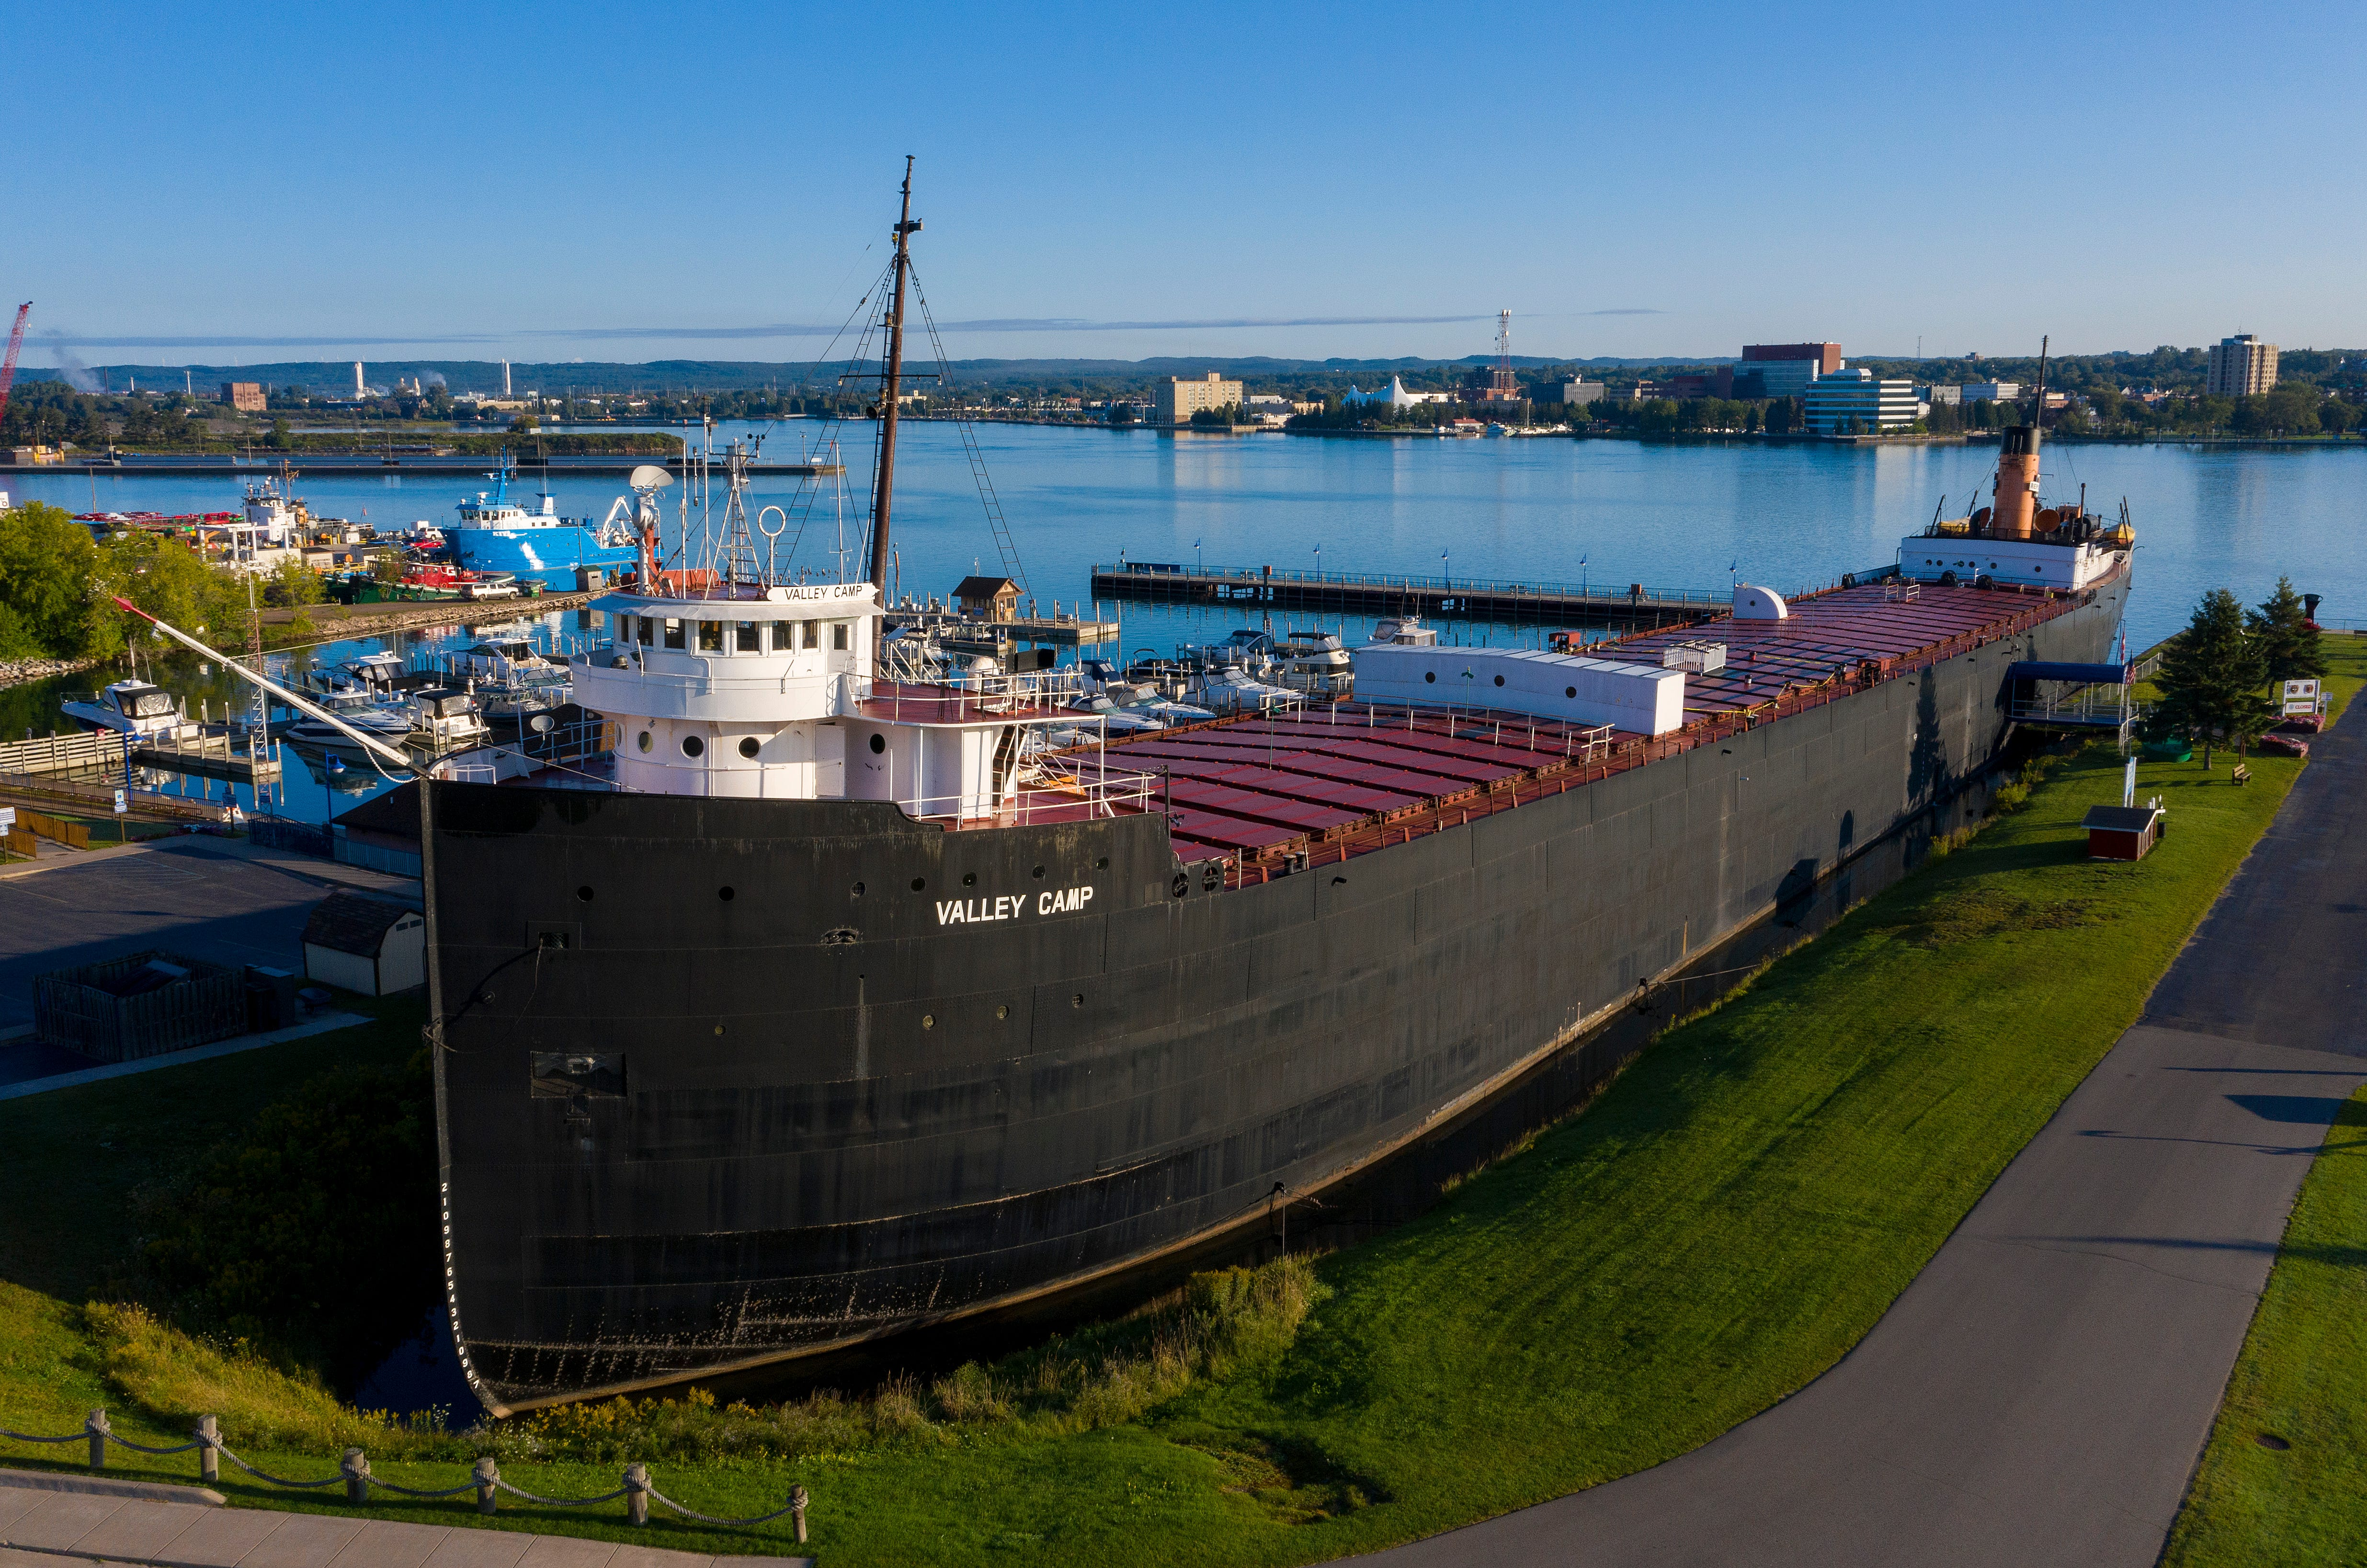 Michigan Marvels: Museum Ship Valley Camp